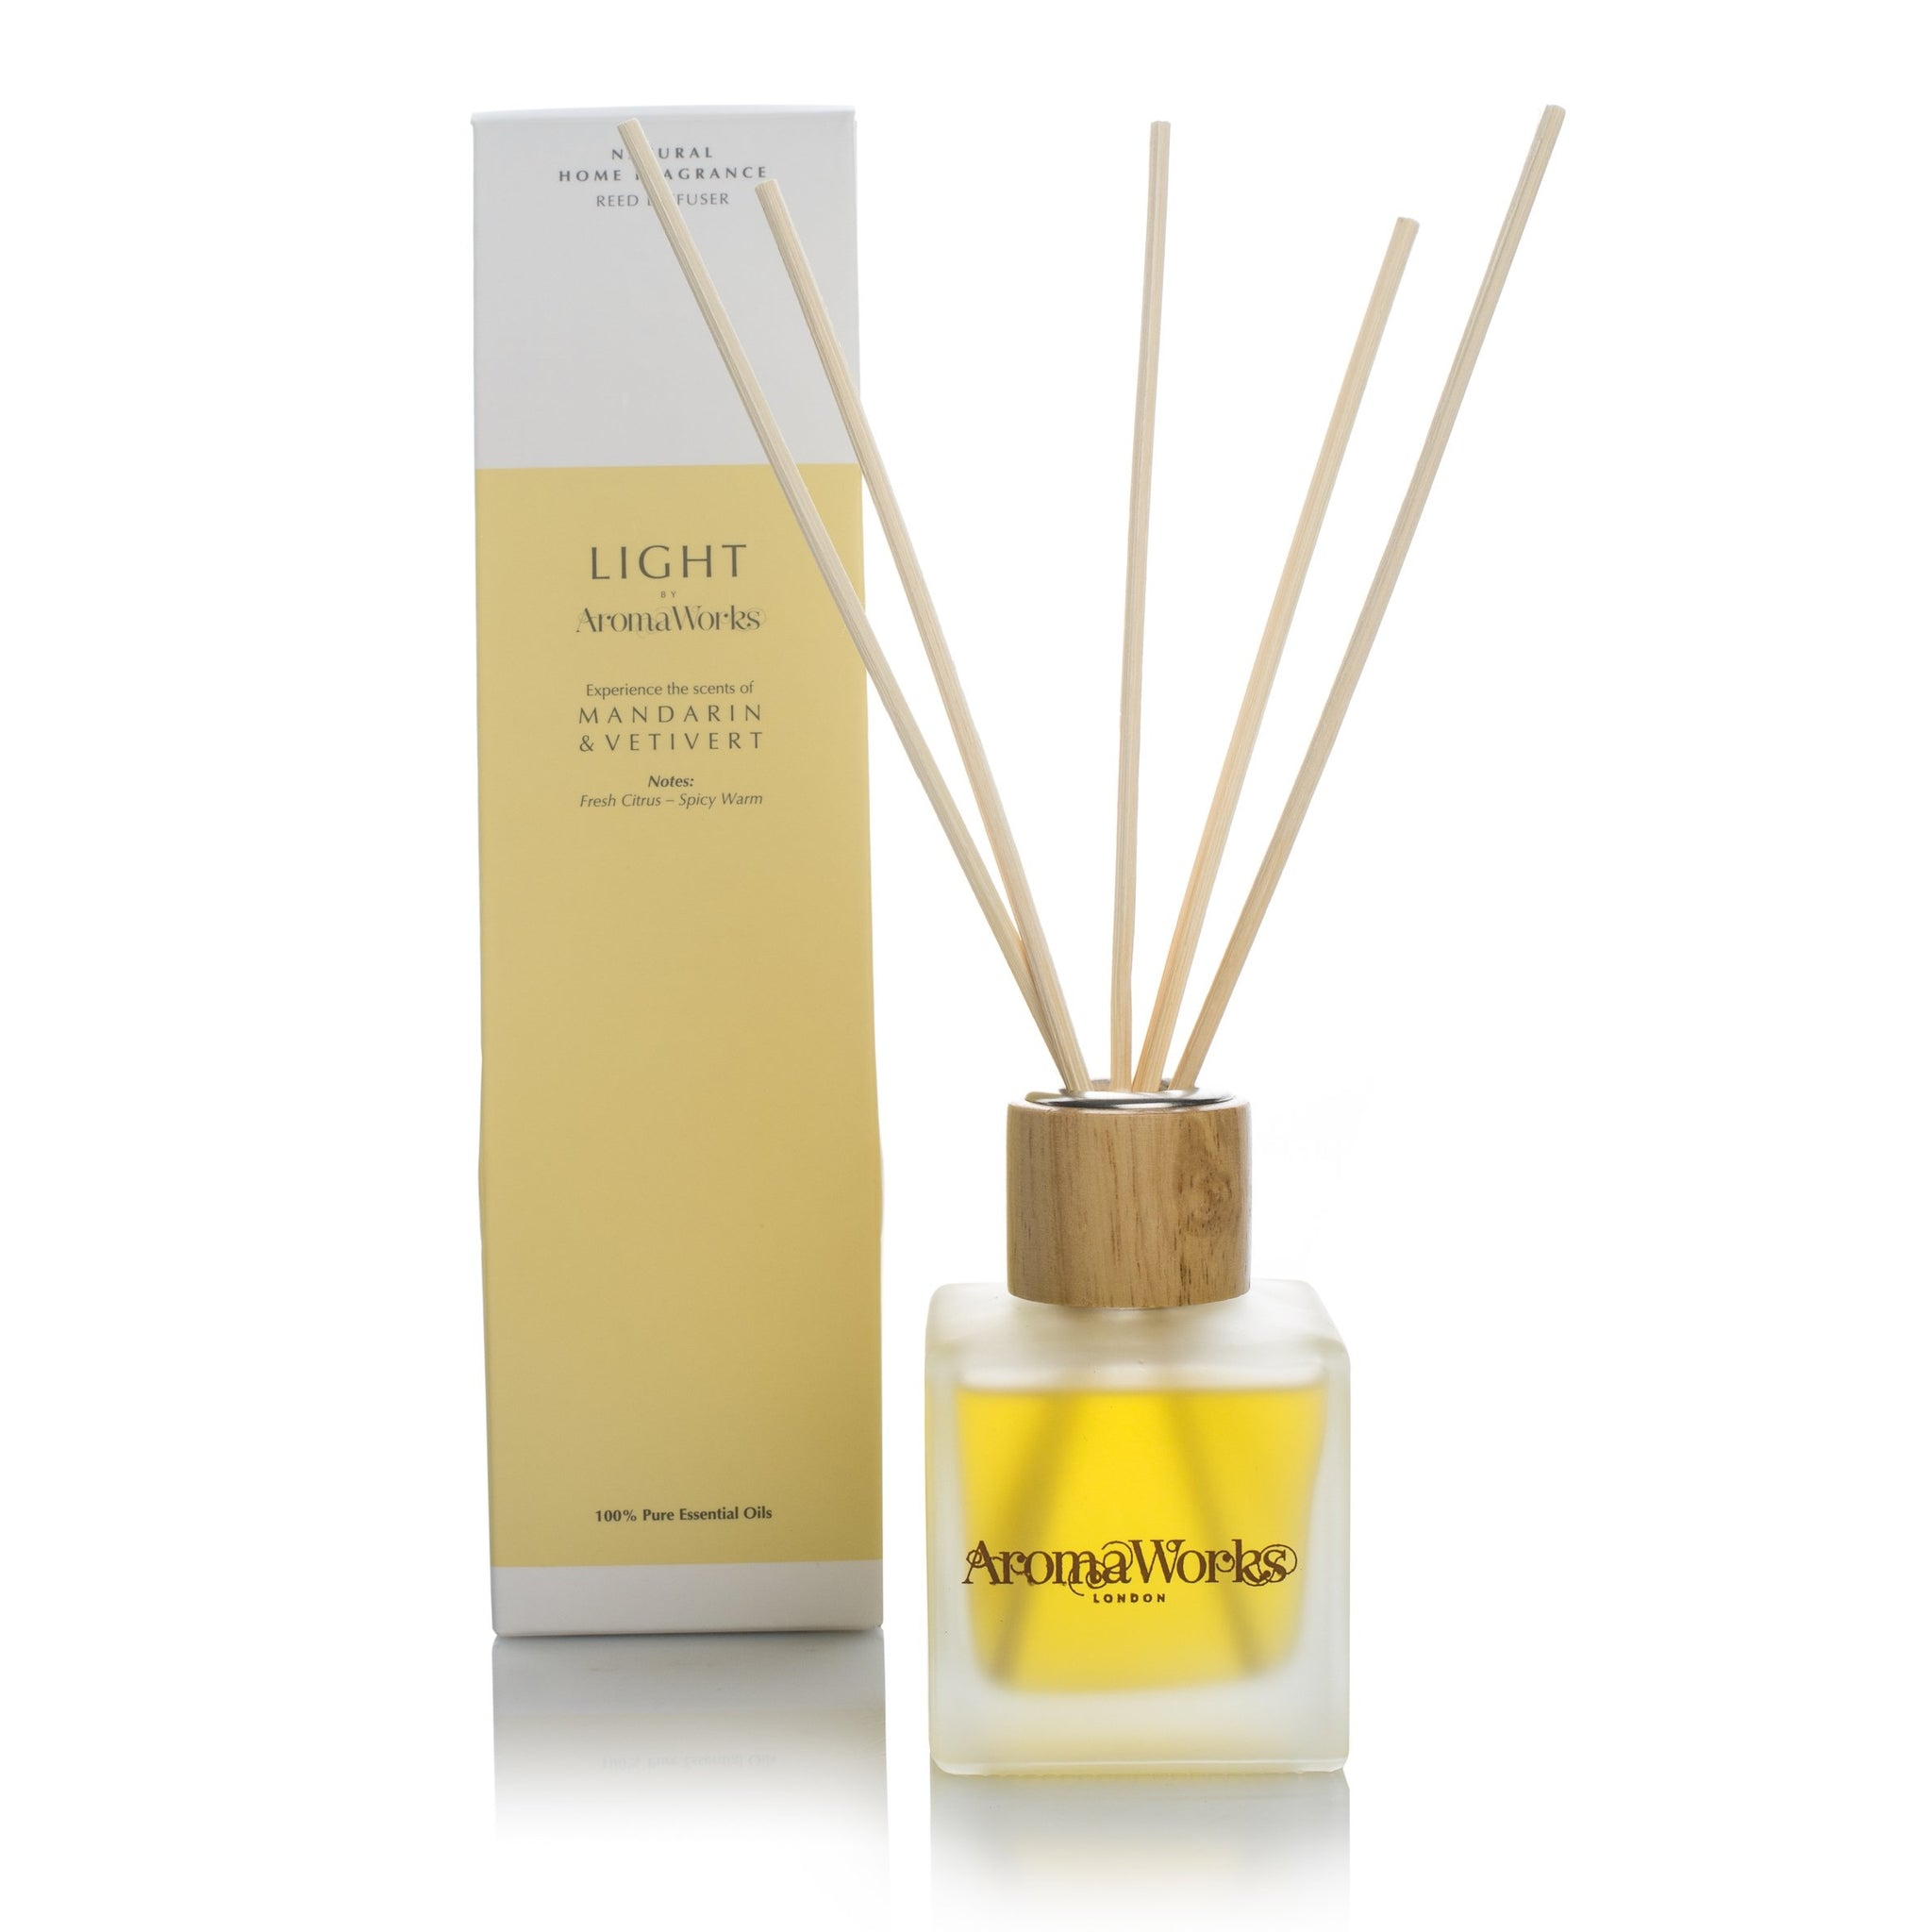 Mandarin and Vertivert Reed Diffuser